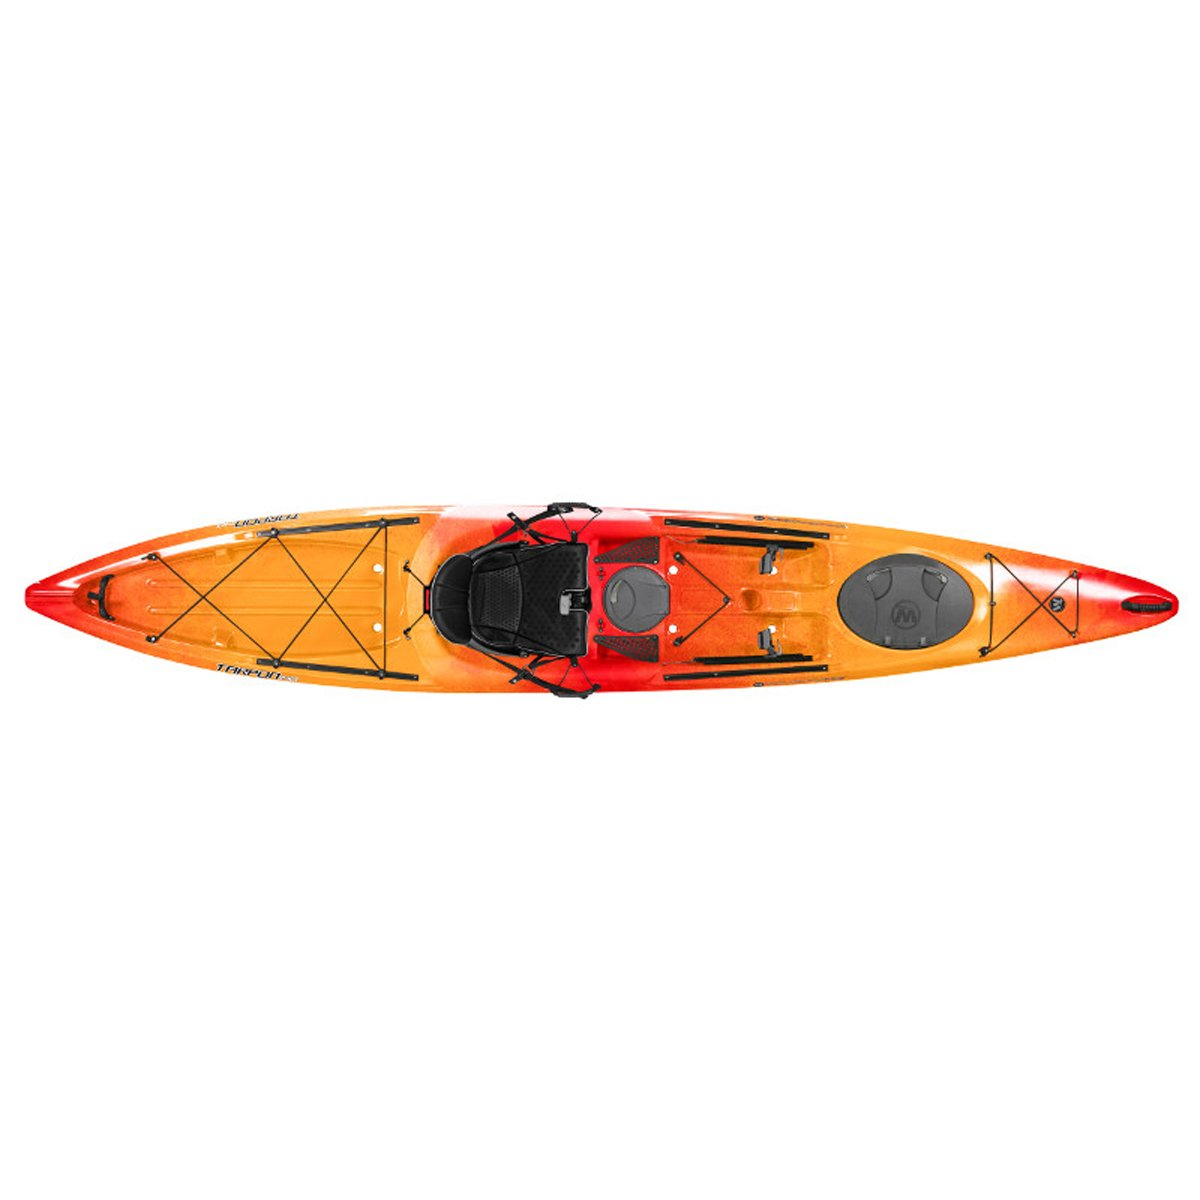 Wilderness Systems 9750405054 Tarpon 140 Kayaks, Mango, 14' by Wilderness Systems